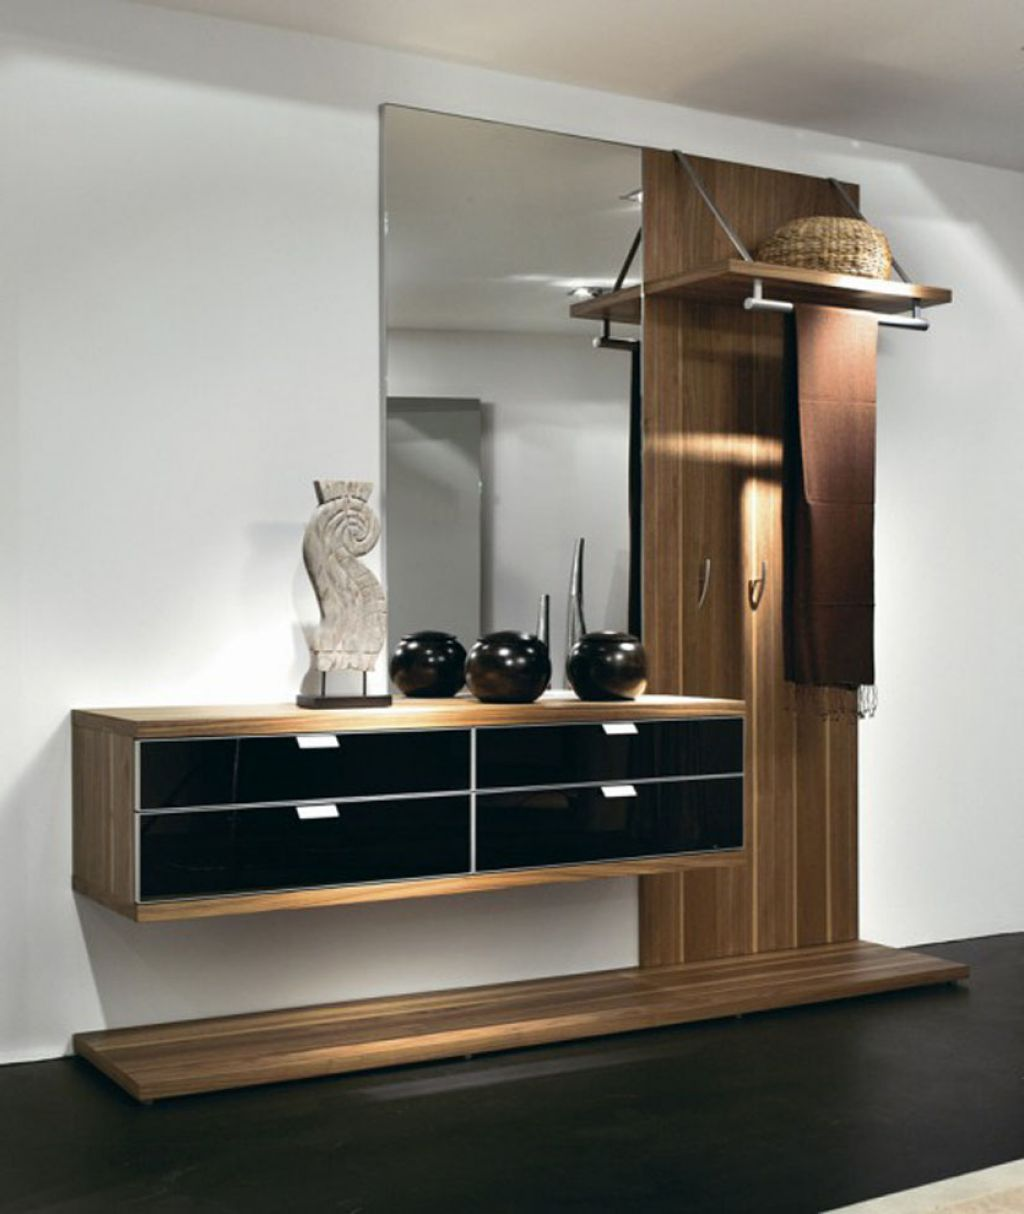 Chic wooden and-black furniture